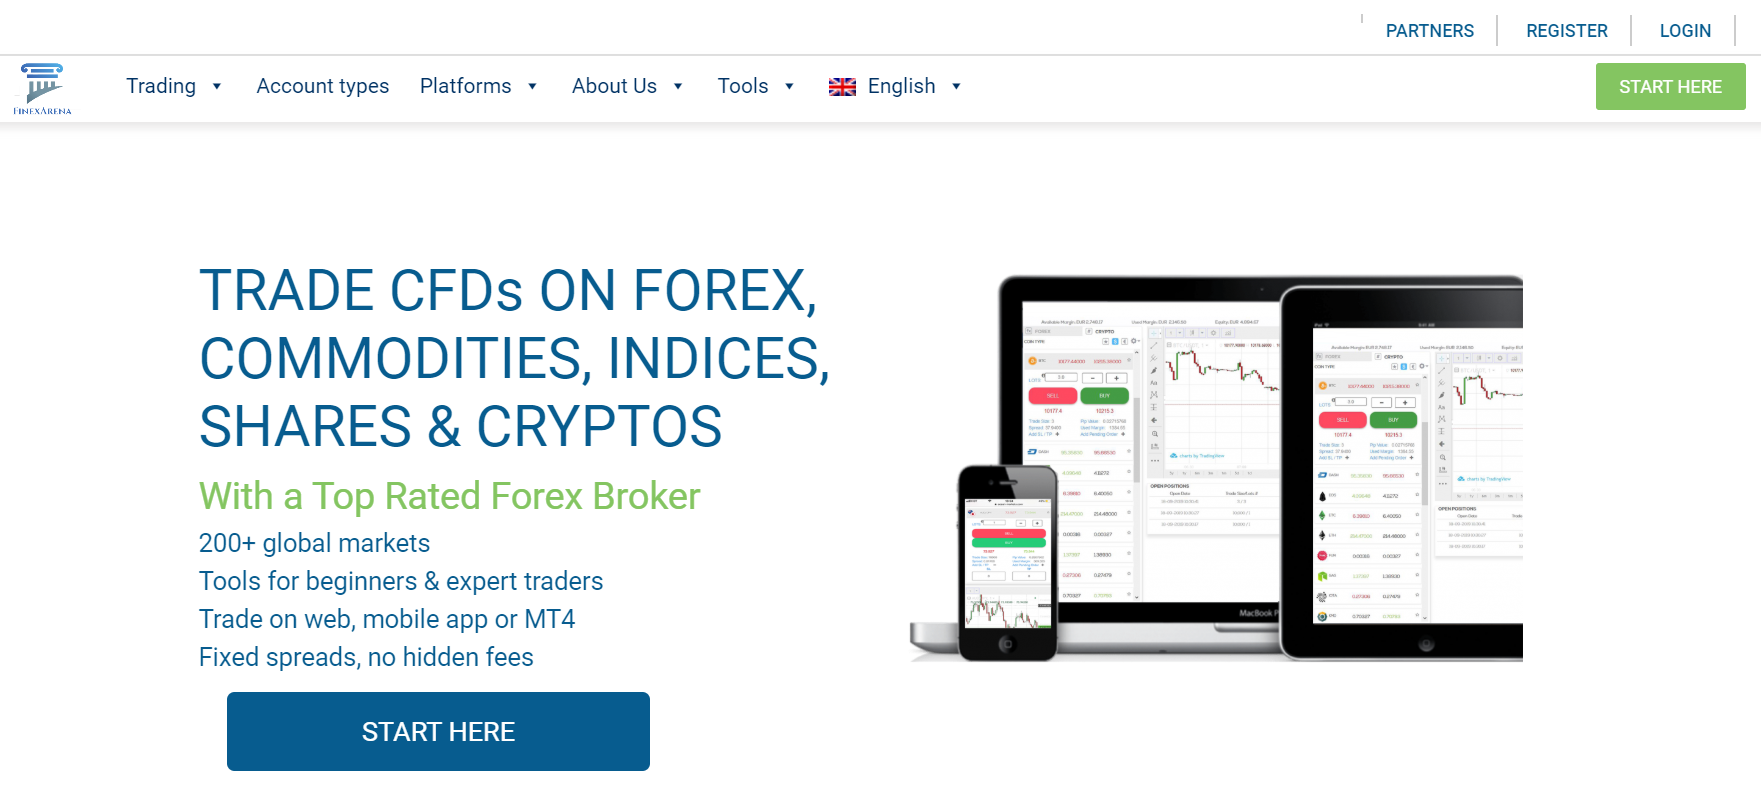 FinexArena Review: Experience Great Trading In Cryptocurrency and Forex CFDs